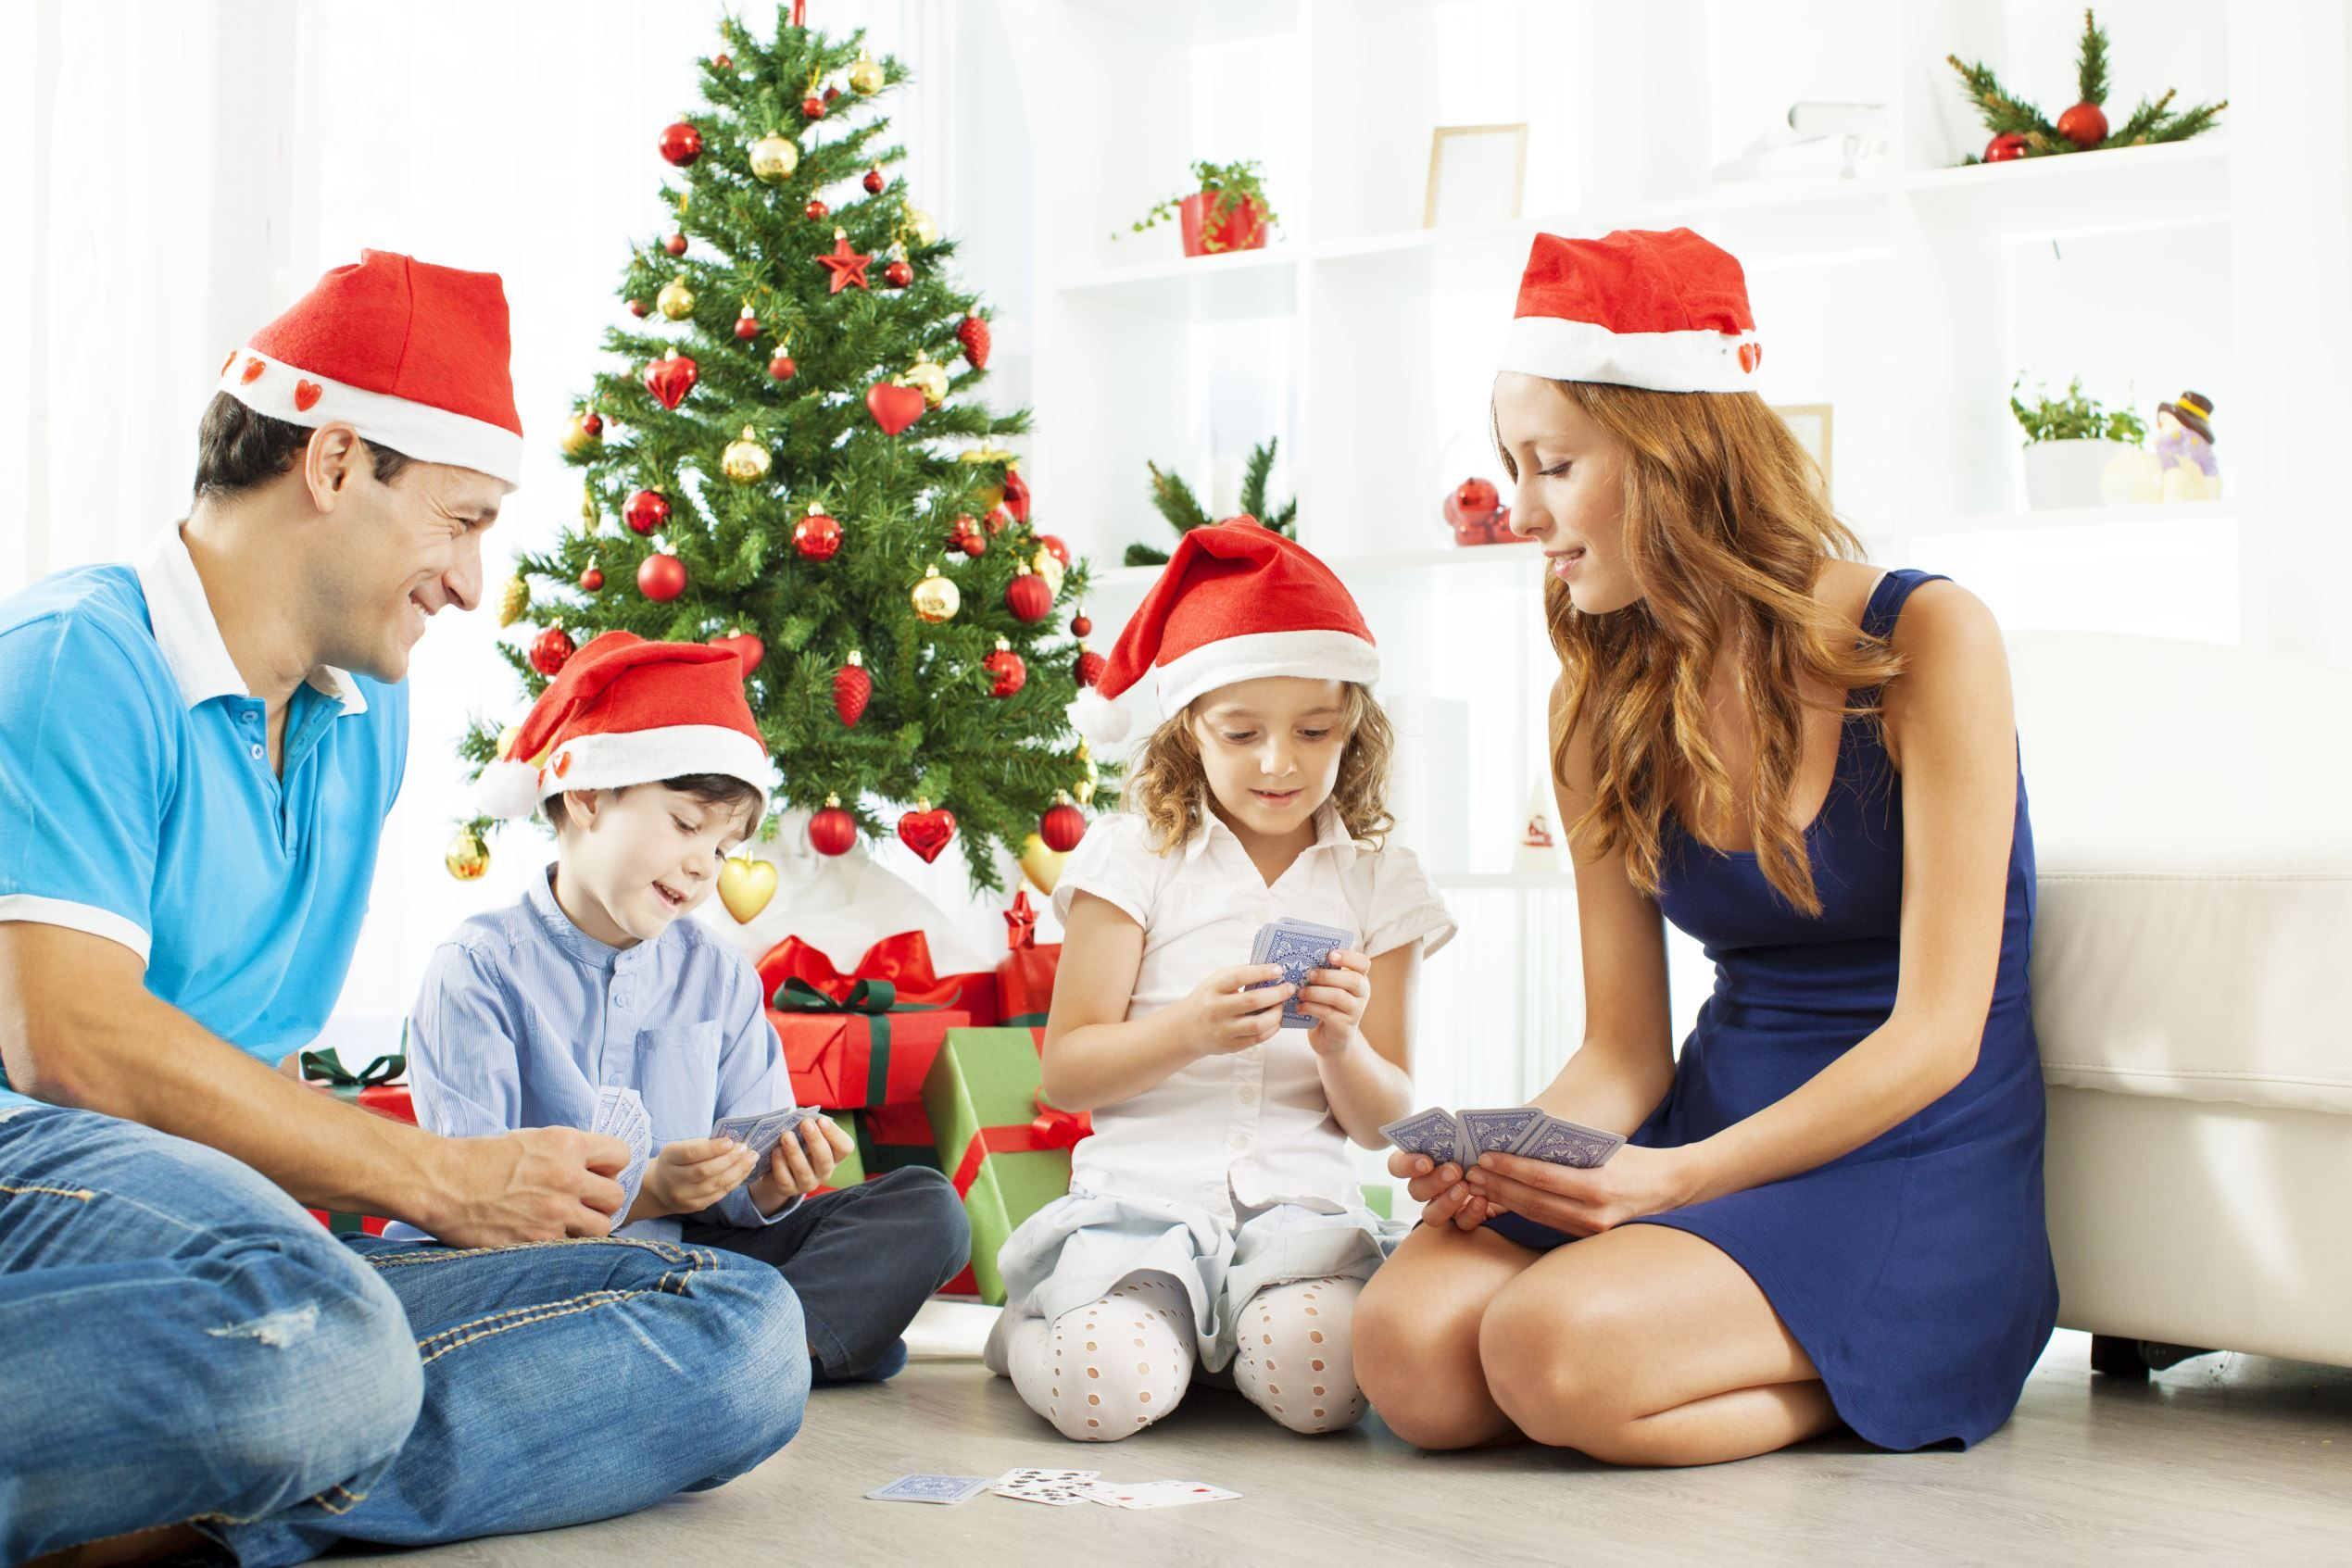 11 Fun Family Activities for the Holidays